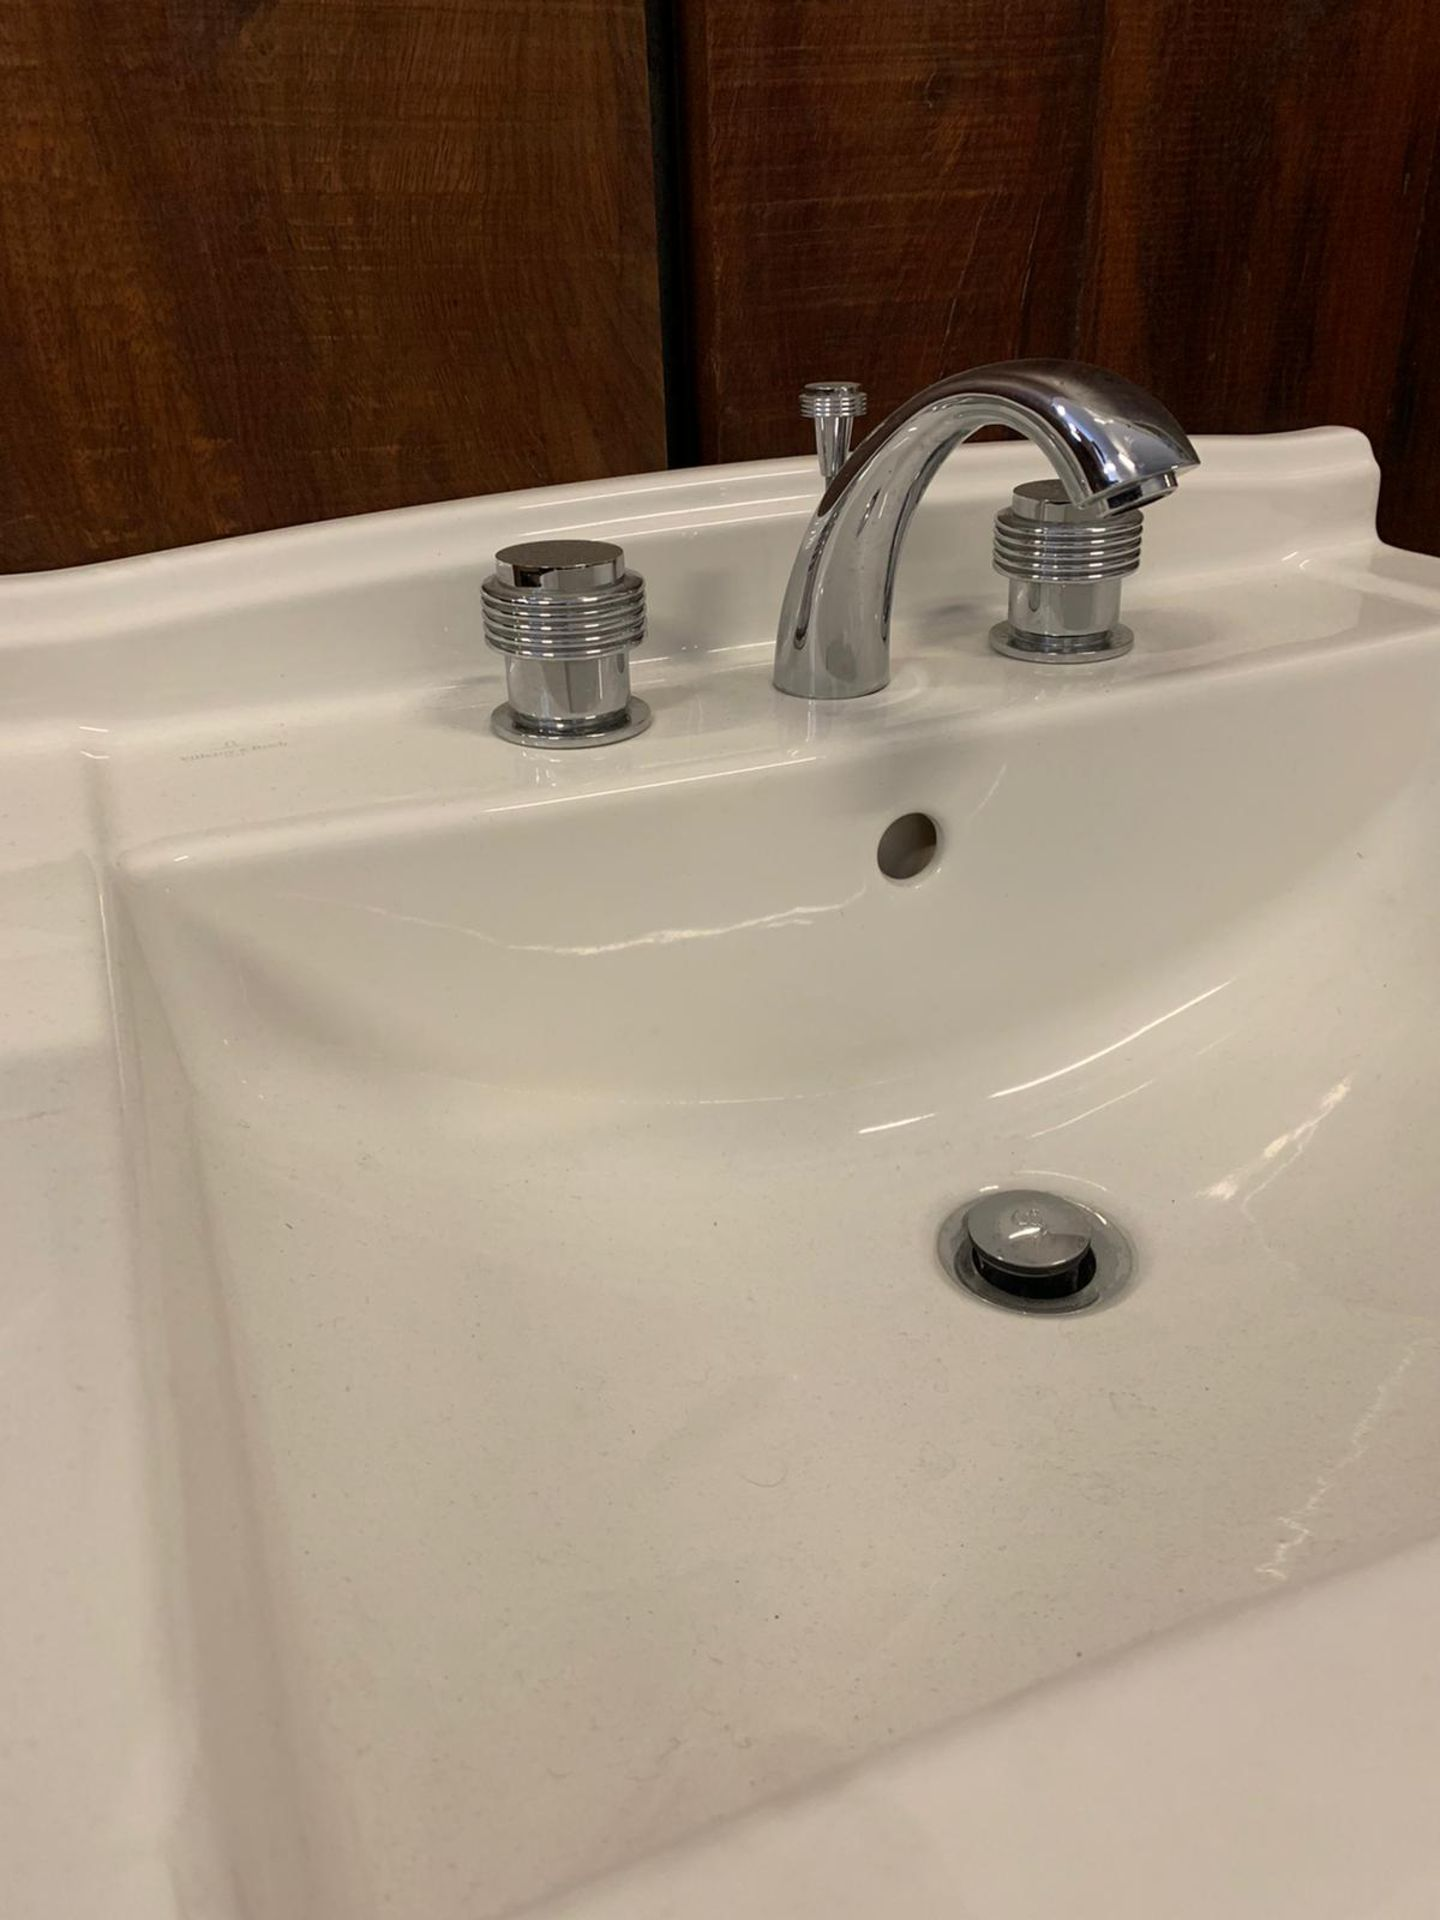 Lot 831 - Villeroy & Boch Free Standing Basin Unit With Chrome Luxury Faucet Taps By Jean-Claude Delepine In